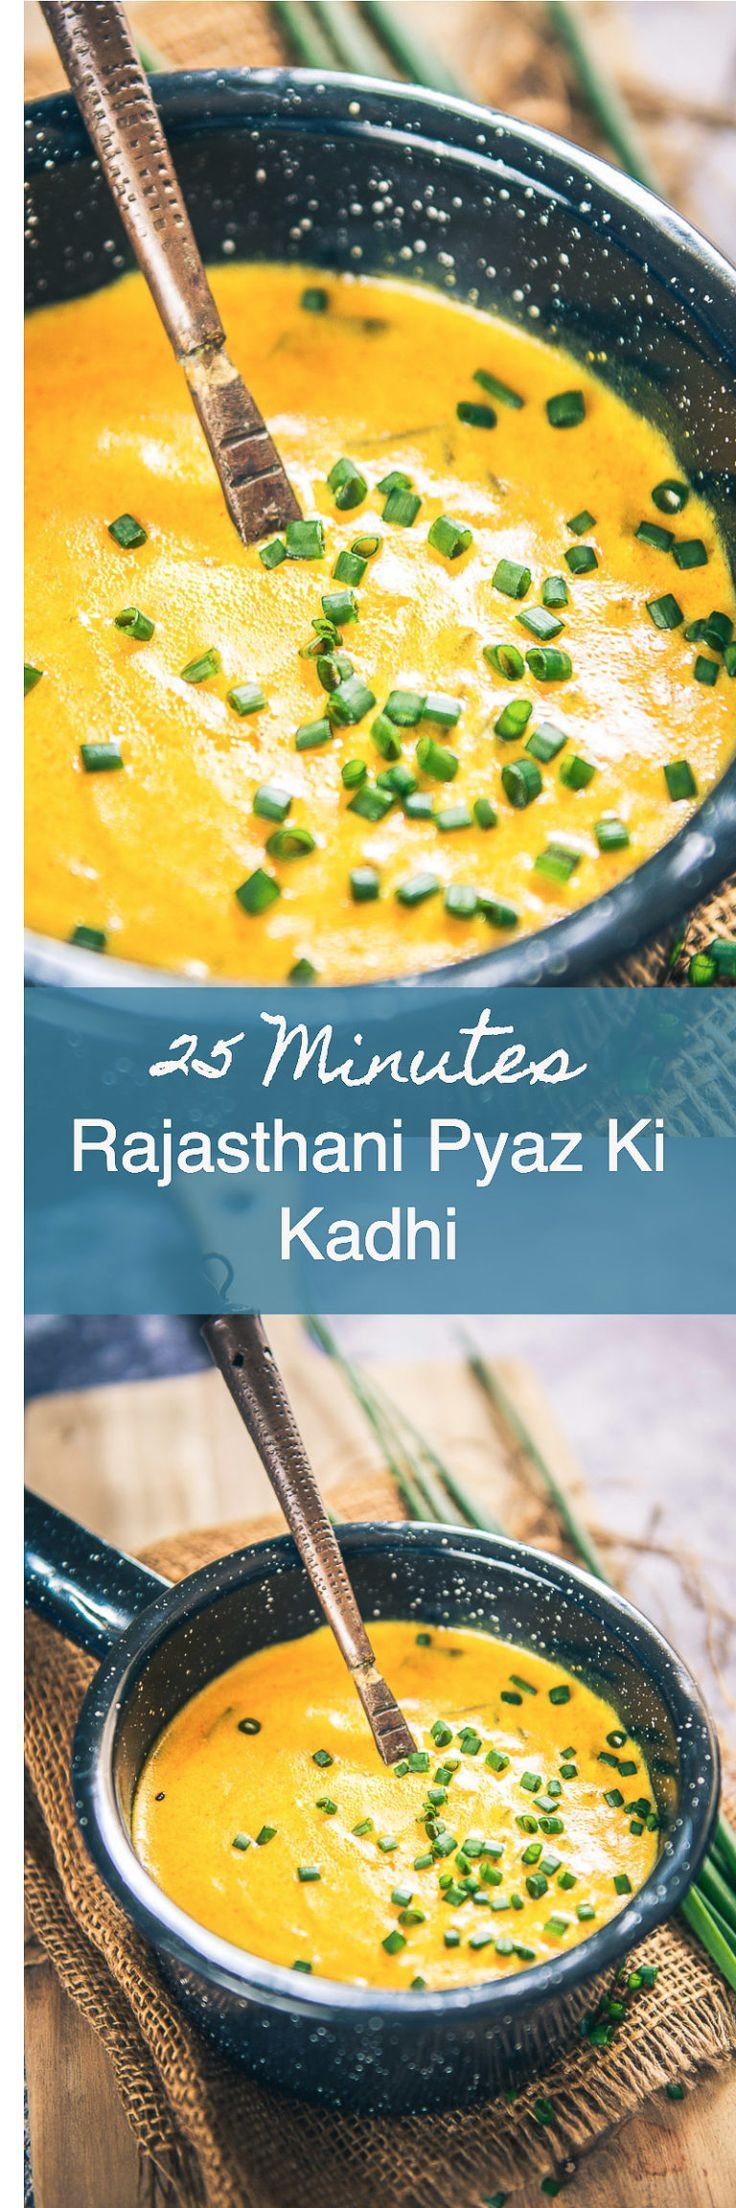 Rajasthani Pyaz Ki Kadhi is an easy to make dish which goes very well with any Indian bread or steamed rice and can be prepared in a jiffy. Indian I Rajasthani I recipe I Food I Easy I Quick I Best I Top I Traditional I Authentic I